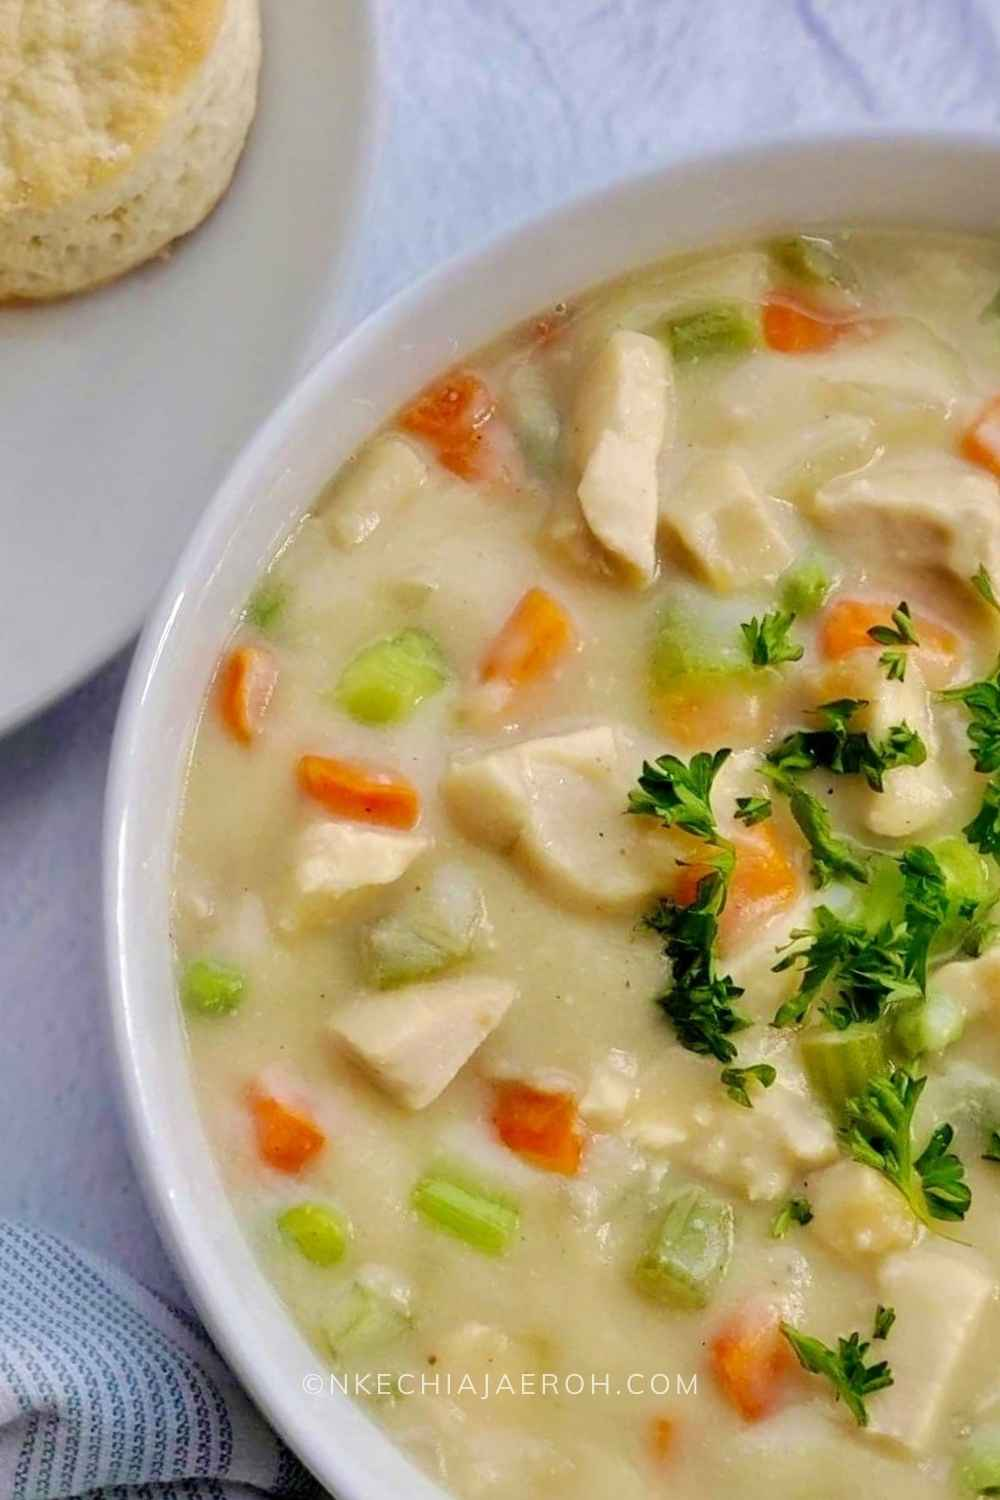 A hearty pot pie soup bowl served warm with biscuits is always the best! This soup is gluten-free, dairy-free, nut-free, grain-free, low-carb, and whole30-friendly! This easy-to-make heart-healthy pot pie soup will keep you satisfied.